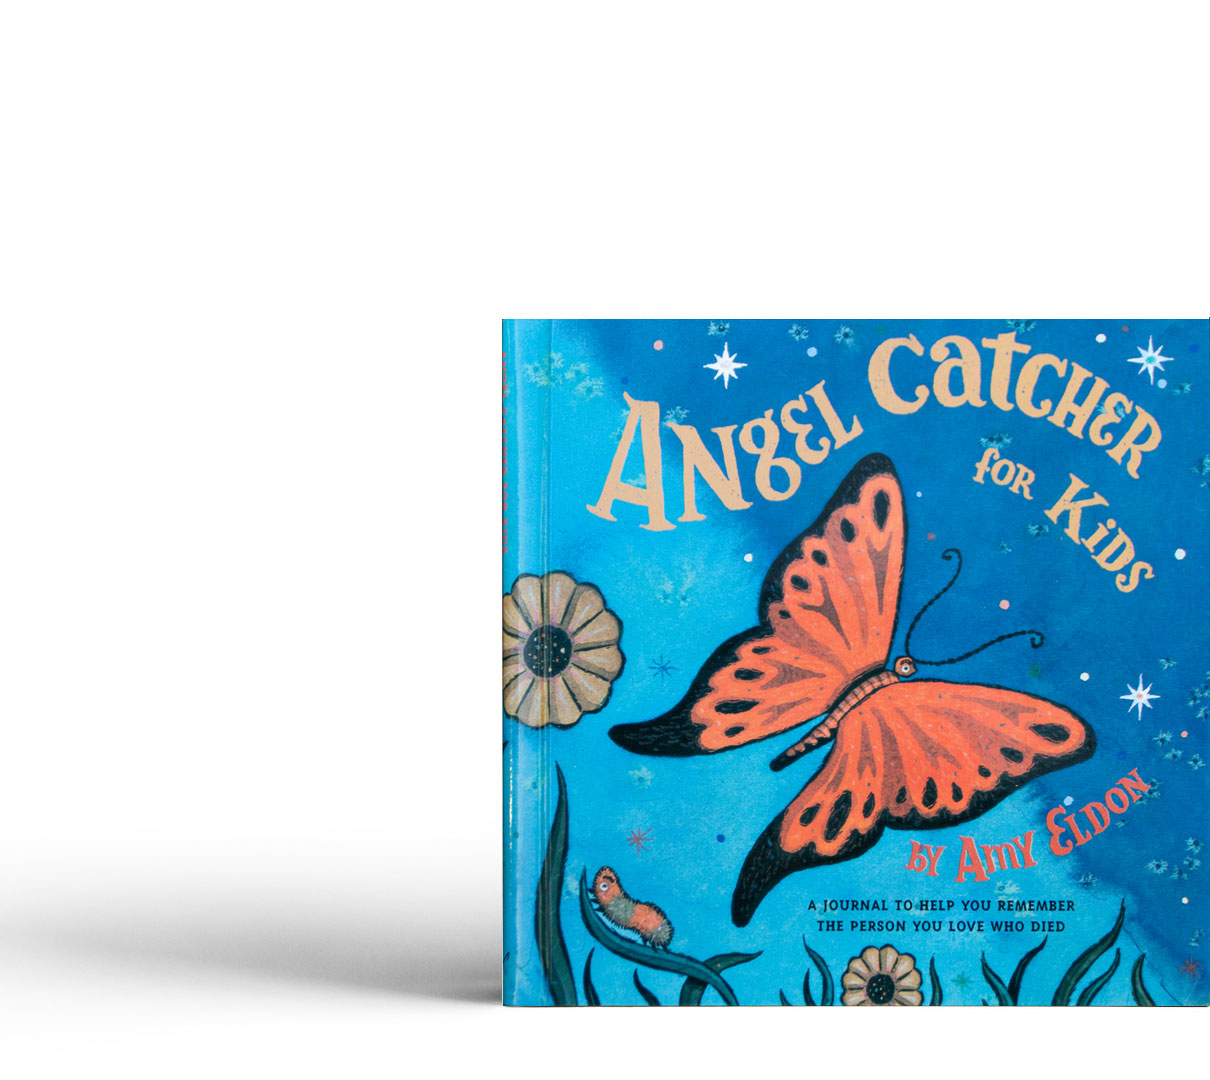 Angel Catcher for Kids: A Journal to Help You Remember the Person you Love Who Died by Amy Eldon